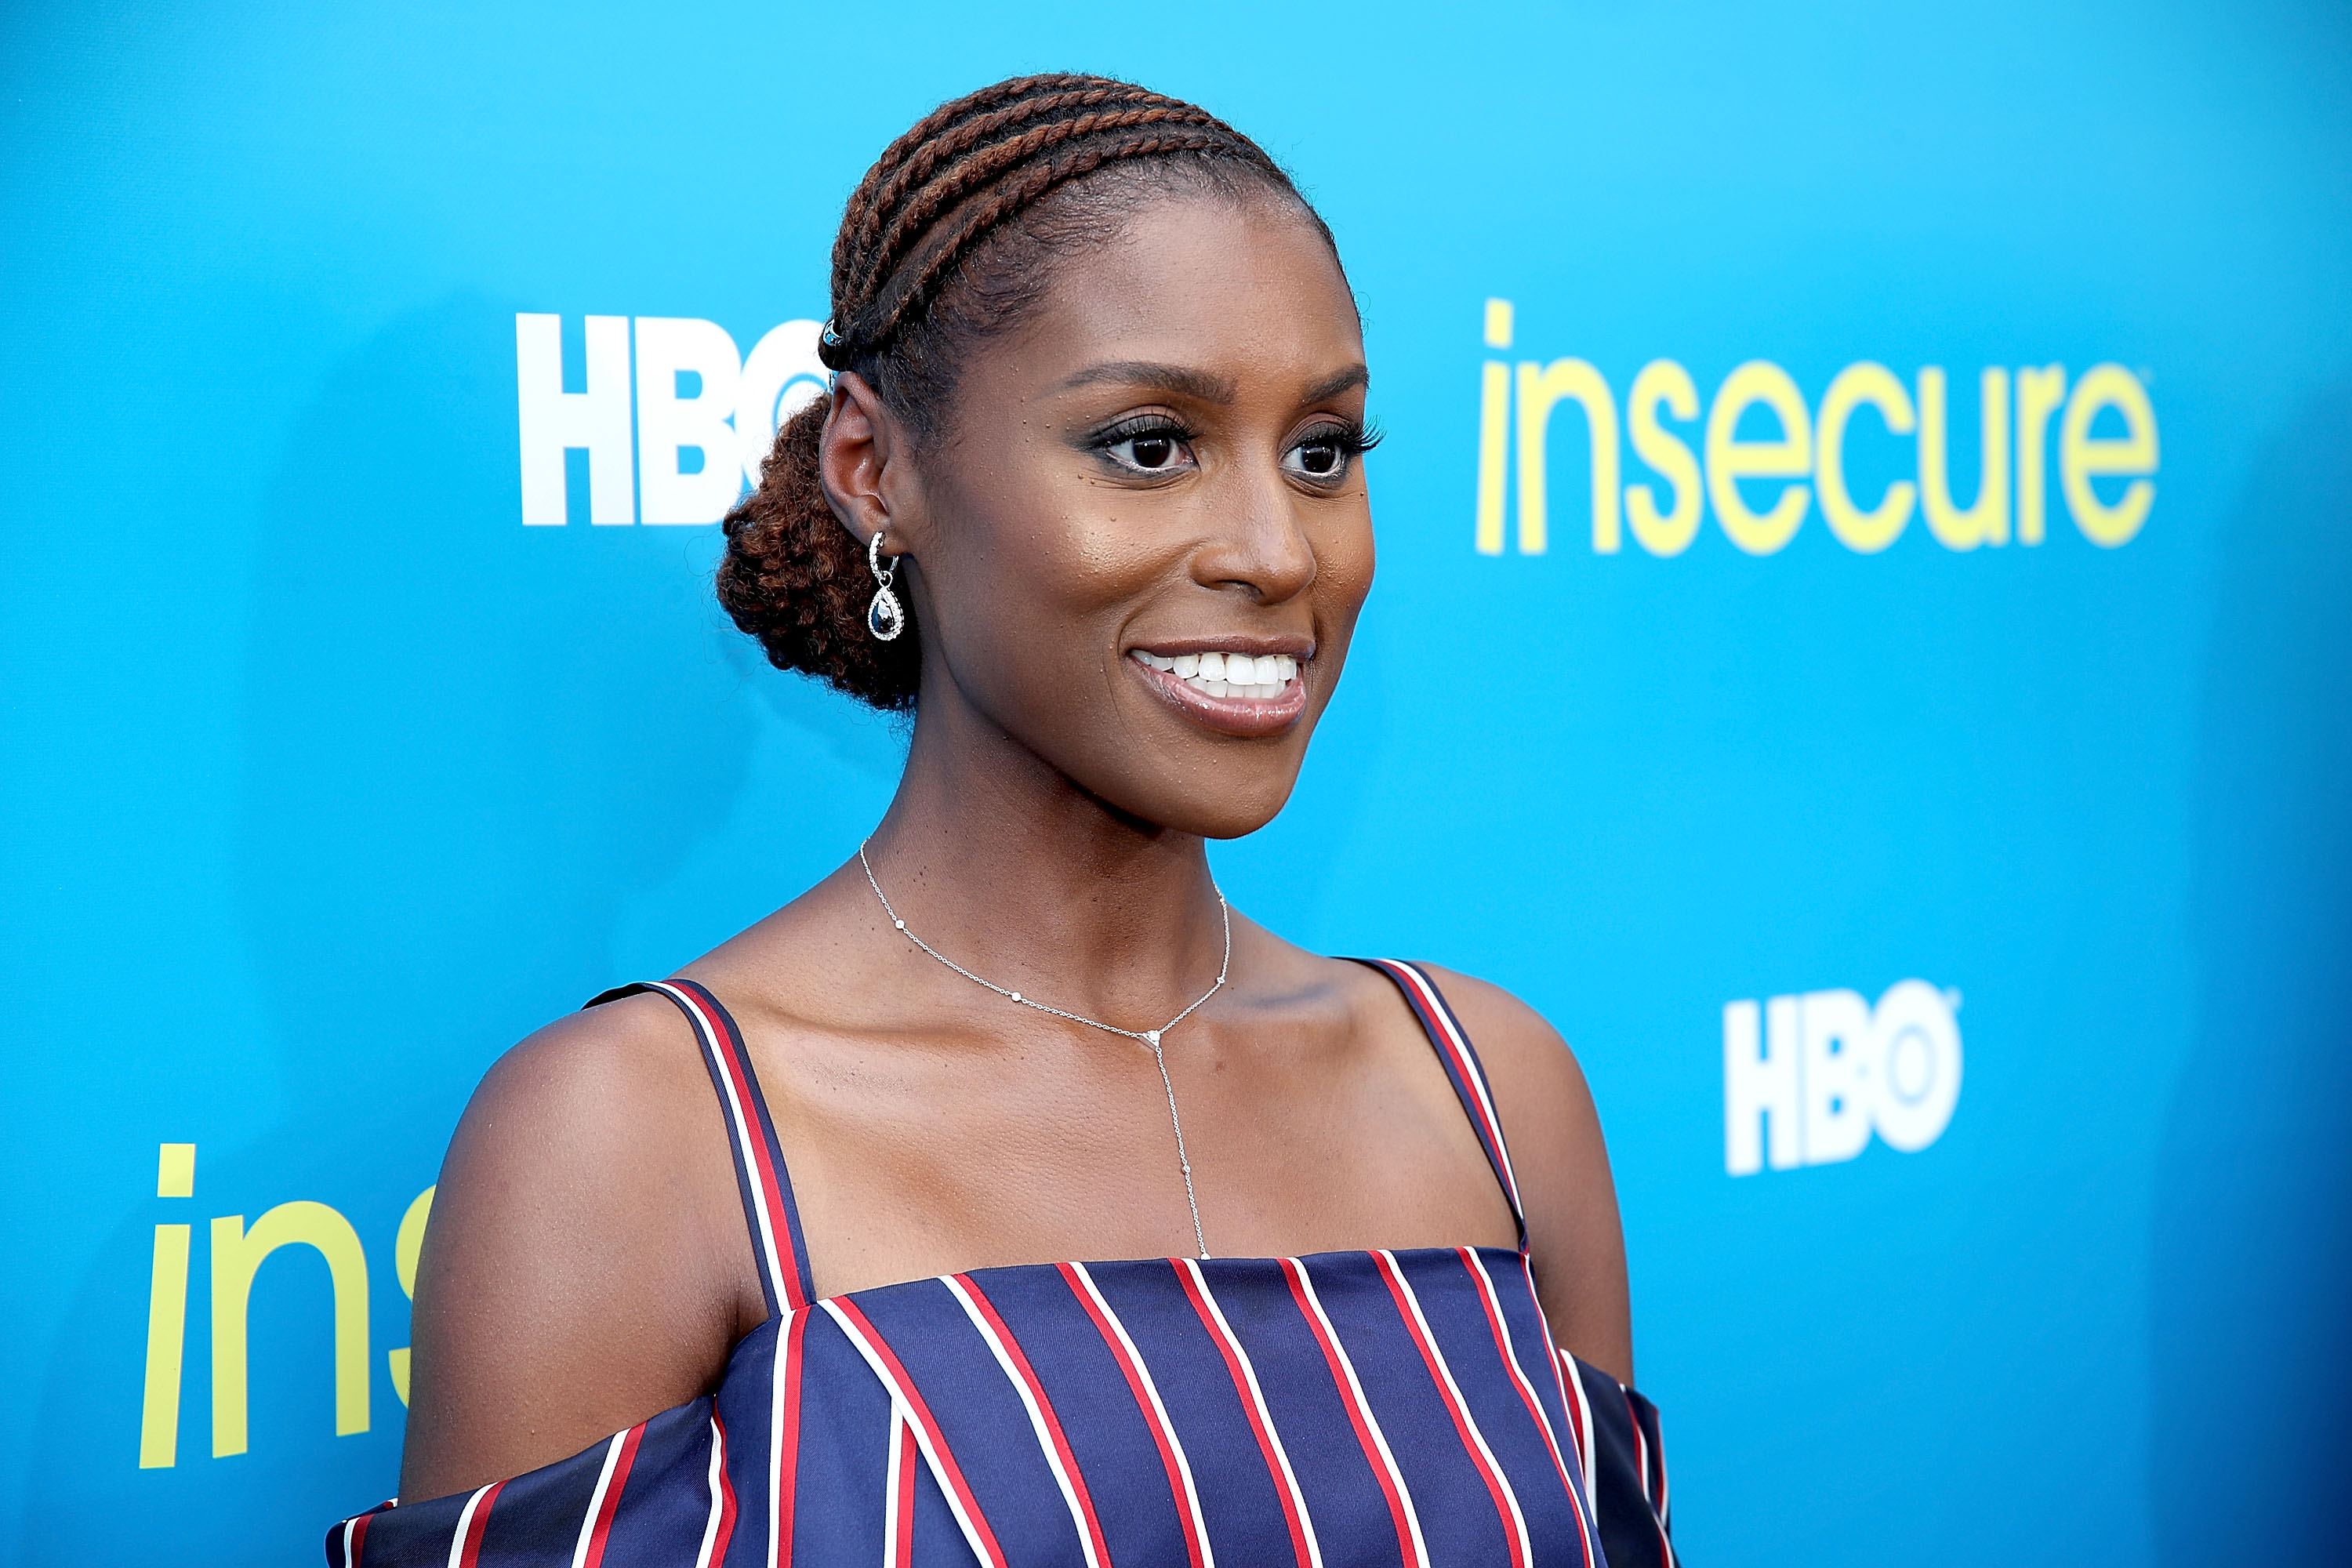 HBO Celebrates New Season Of 'Insecure' With Block Party In Inglewood